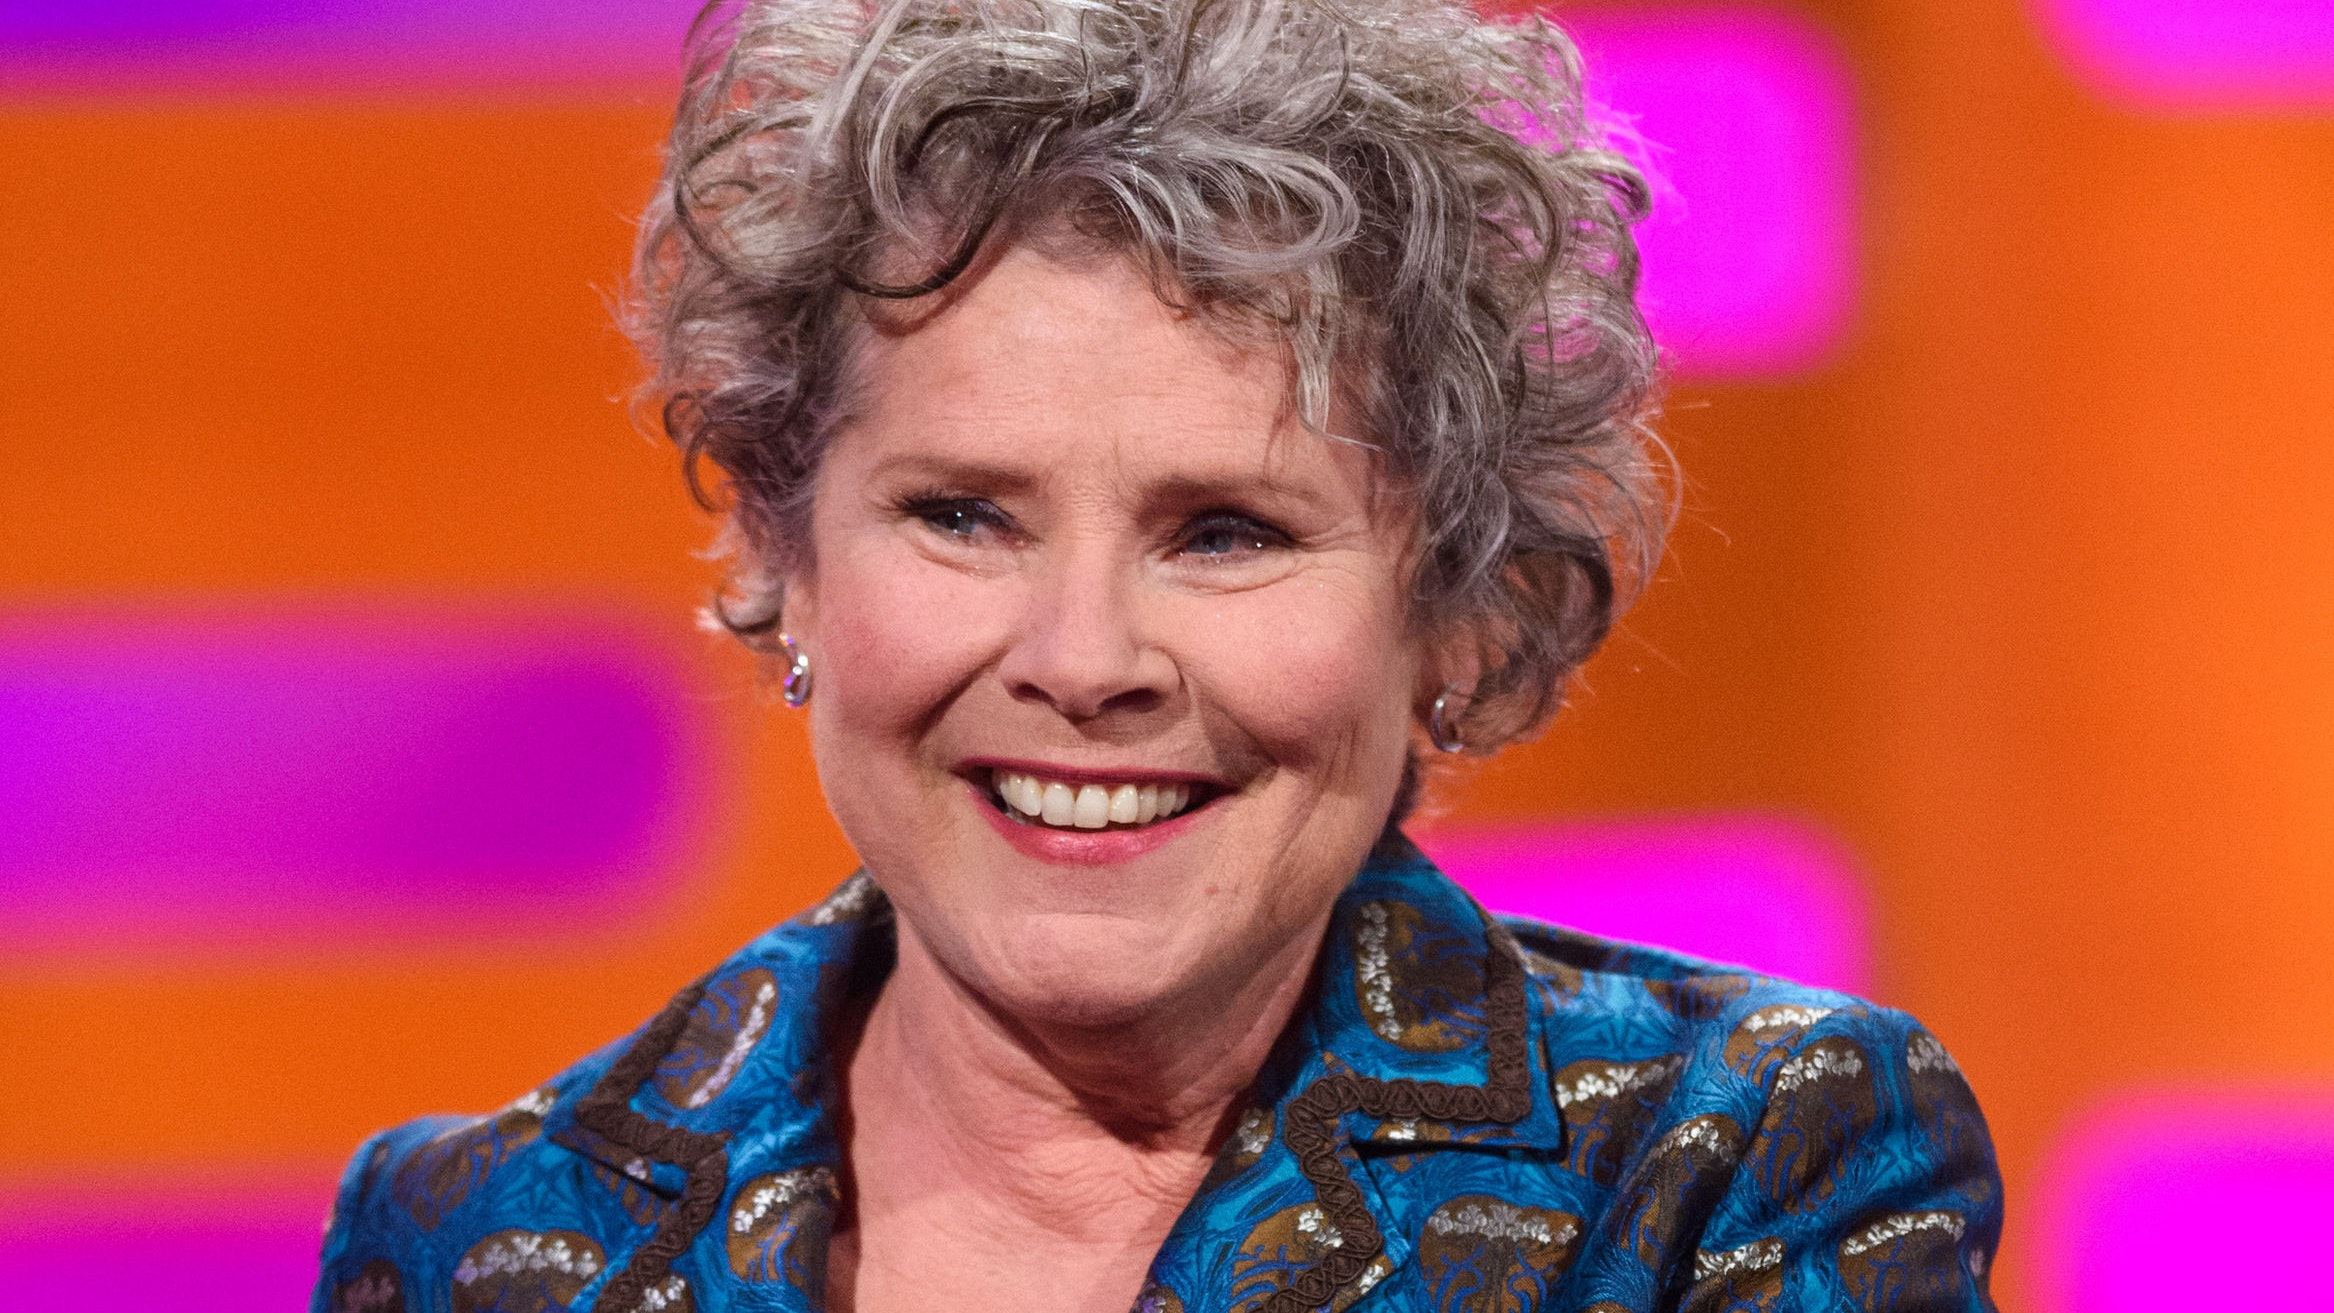 Imelda Staunton nudes (92 foto and video), Tits, Bikini, Feet, legs 2015